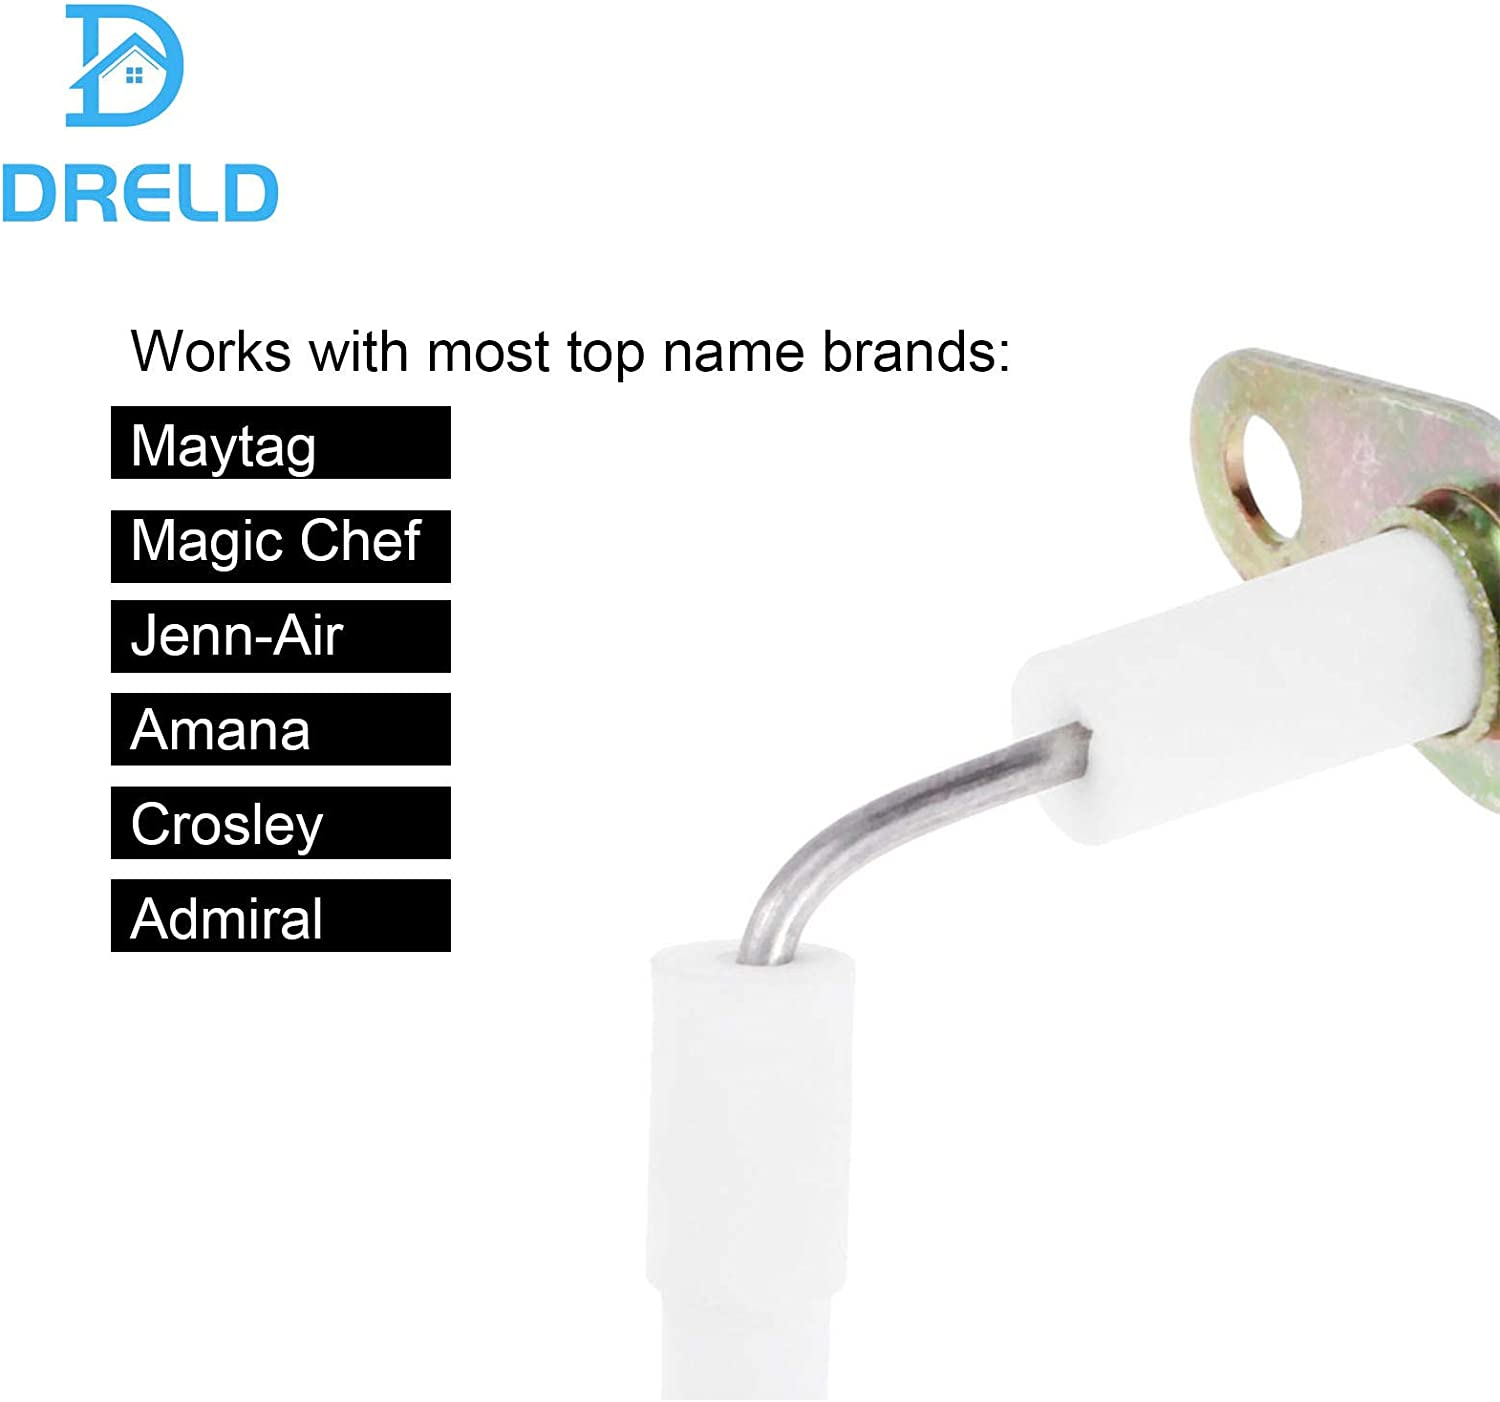 CLOTHES DRYER FLAT STYLE GAS IGNITER FOR WHIRLPOOL KENMORE MAYTAG FRIGIDAIRE JENN AIR CROSLEY ADMIRAL NORGE MAGIC CHEF 338900